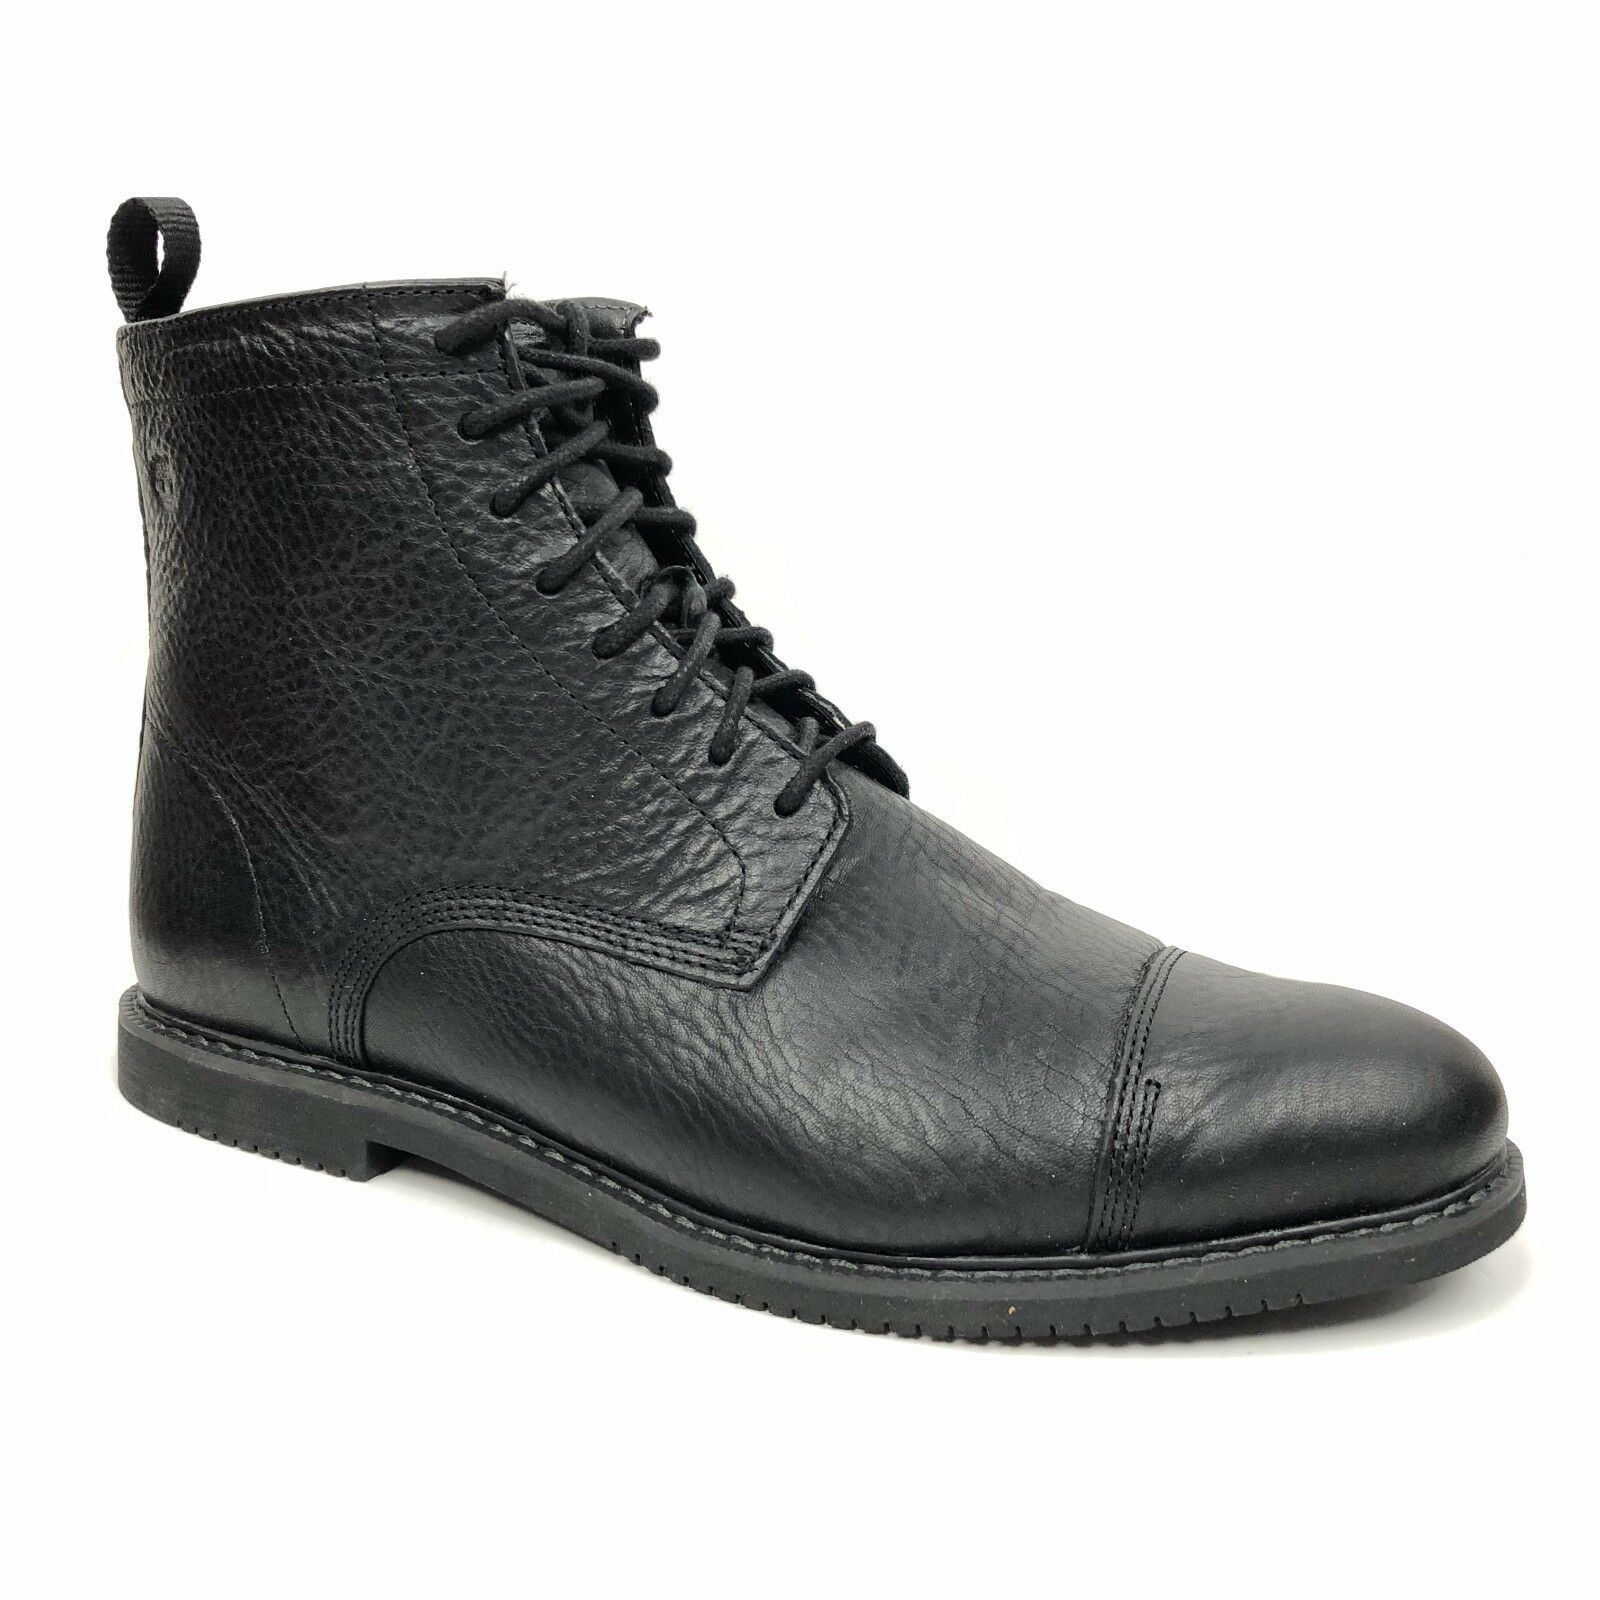 Timberland Men's Cobleton Side Zip Black Full Grain Leather Ankle Boots 5547A